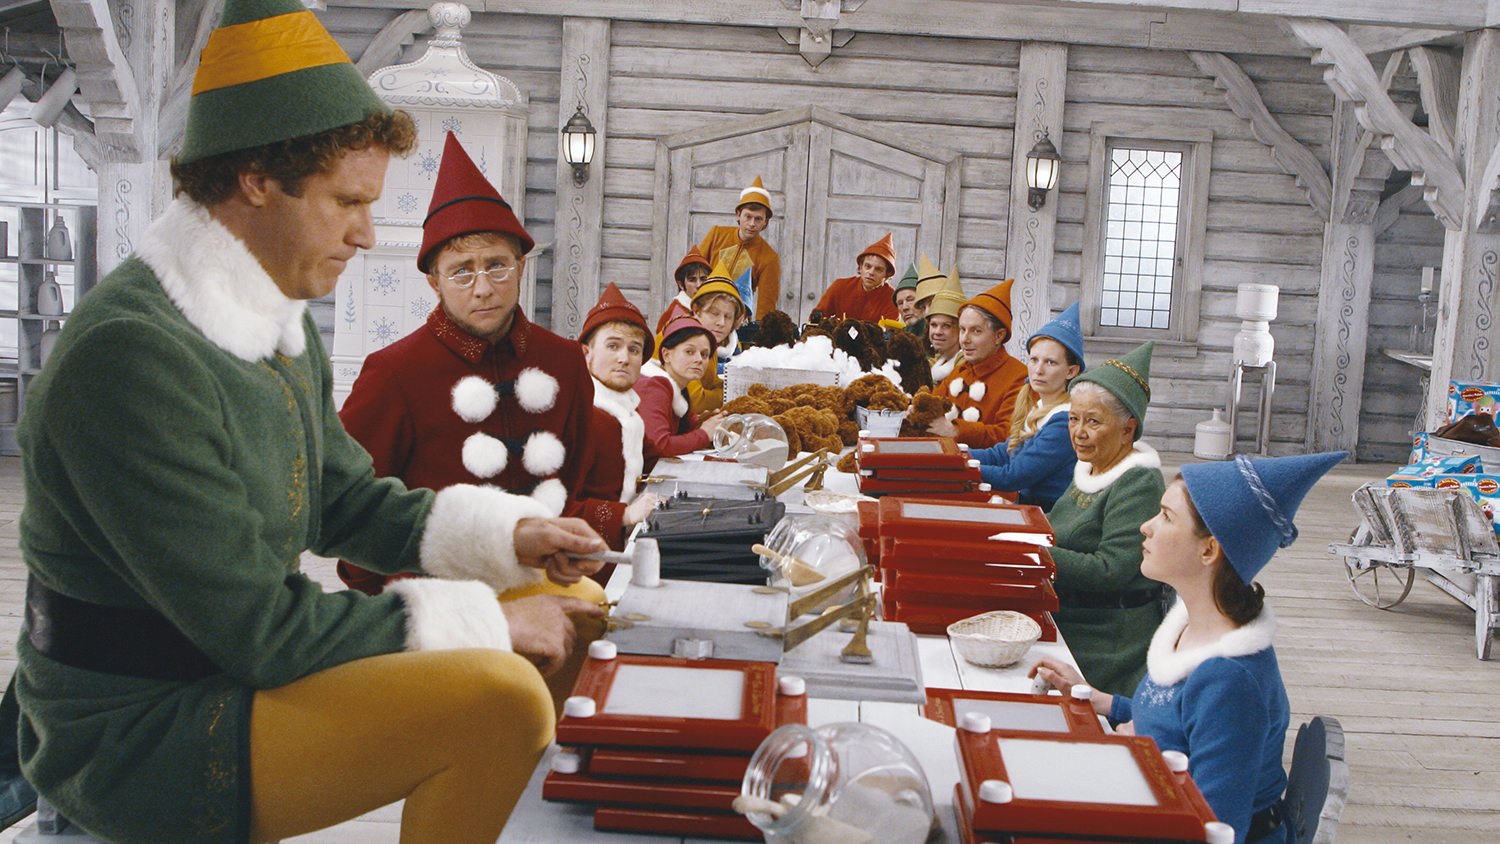 Christmas movie screenings for families in New York City